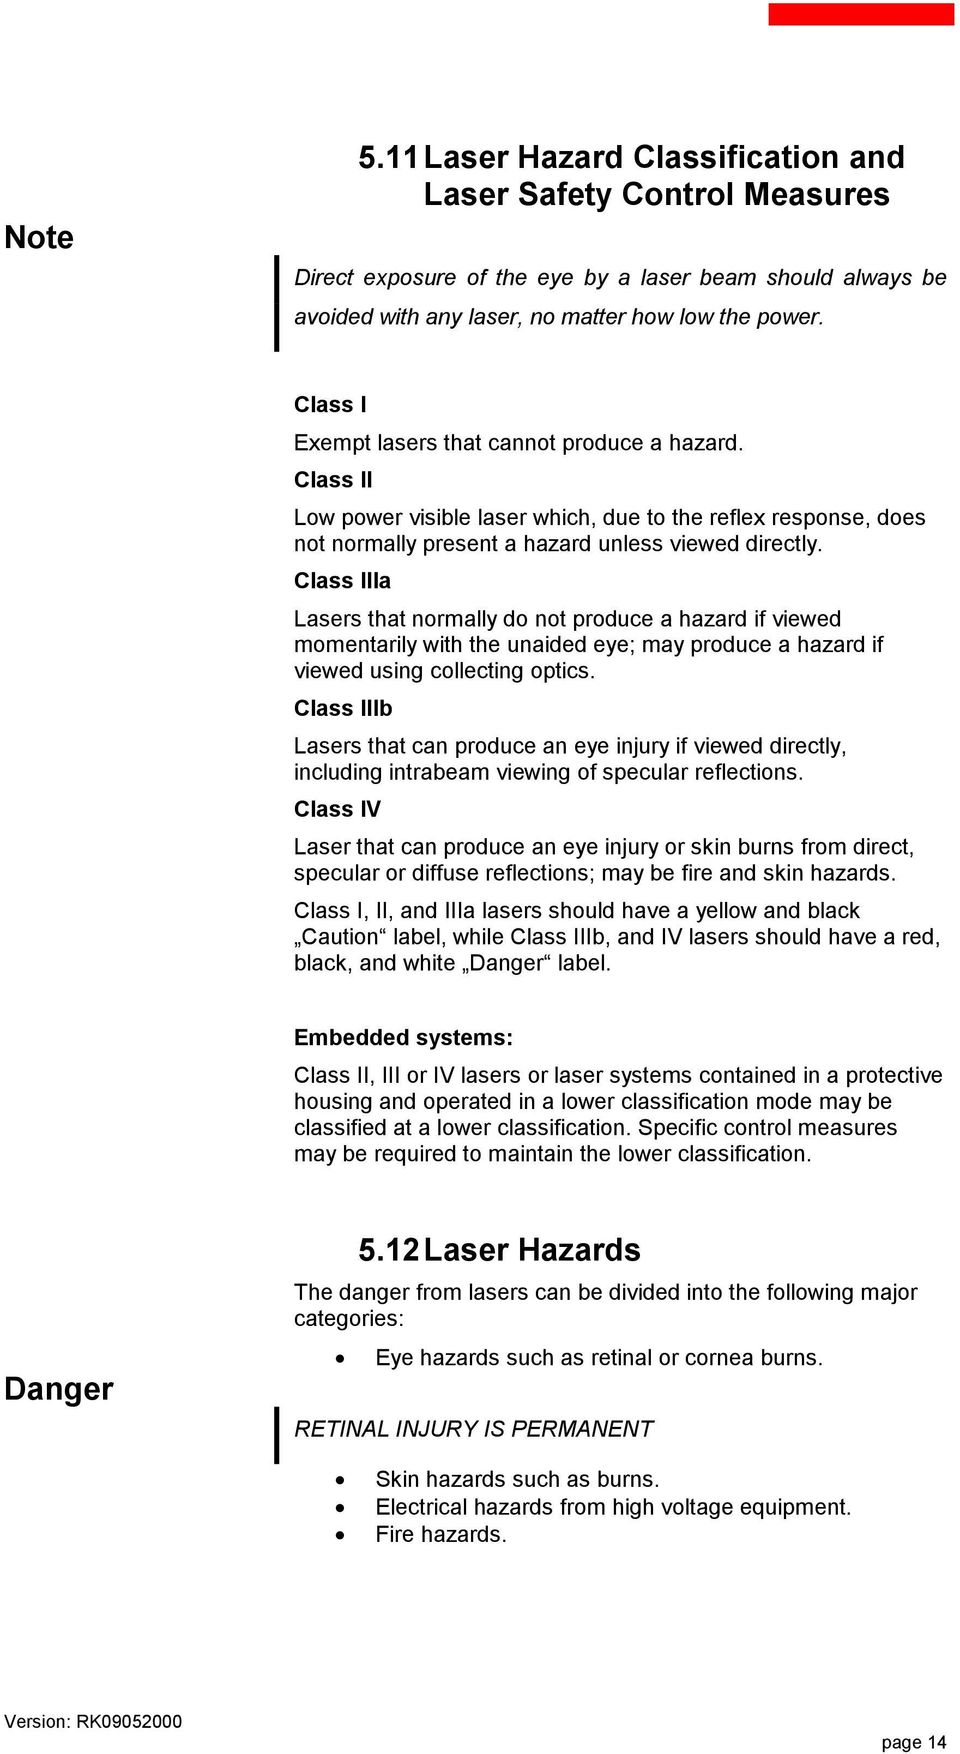 Class IIIa Lasers that normally do not produce a hazard if viewed momentarily with the unaided eye; may produce a hazard if viewed using collecting optics.